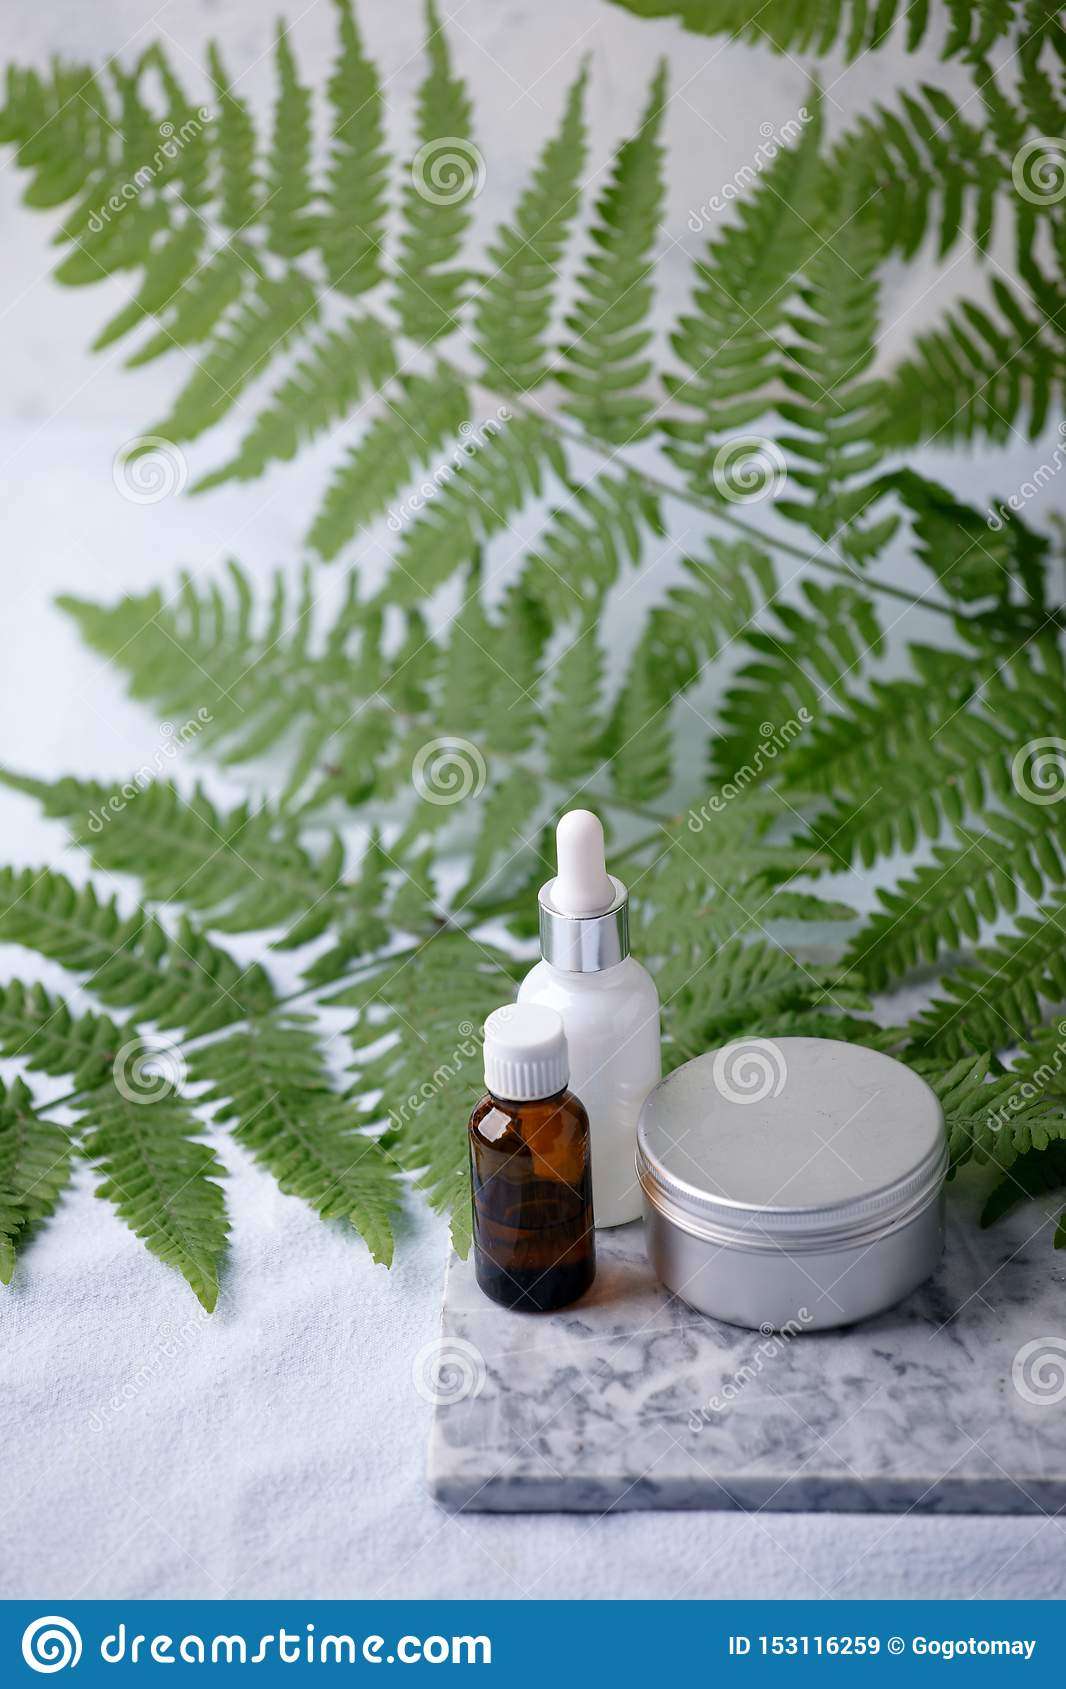 Zero waste natural cosmetics products on marble desk, organic plantbased cosmetic concept, eco-friendly background, minimal